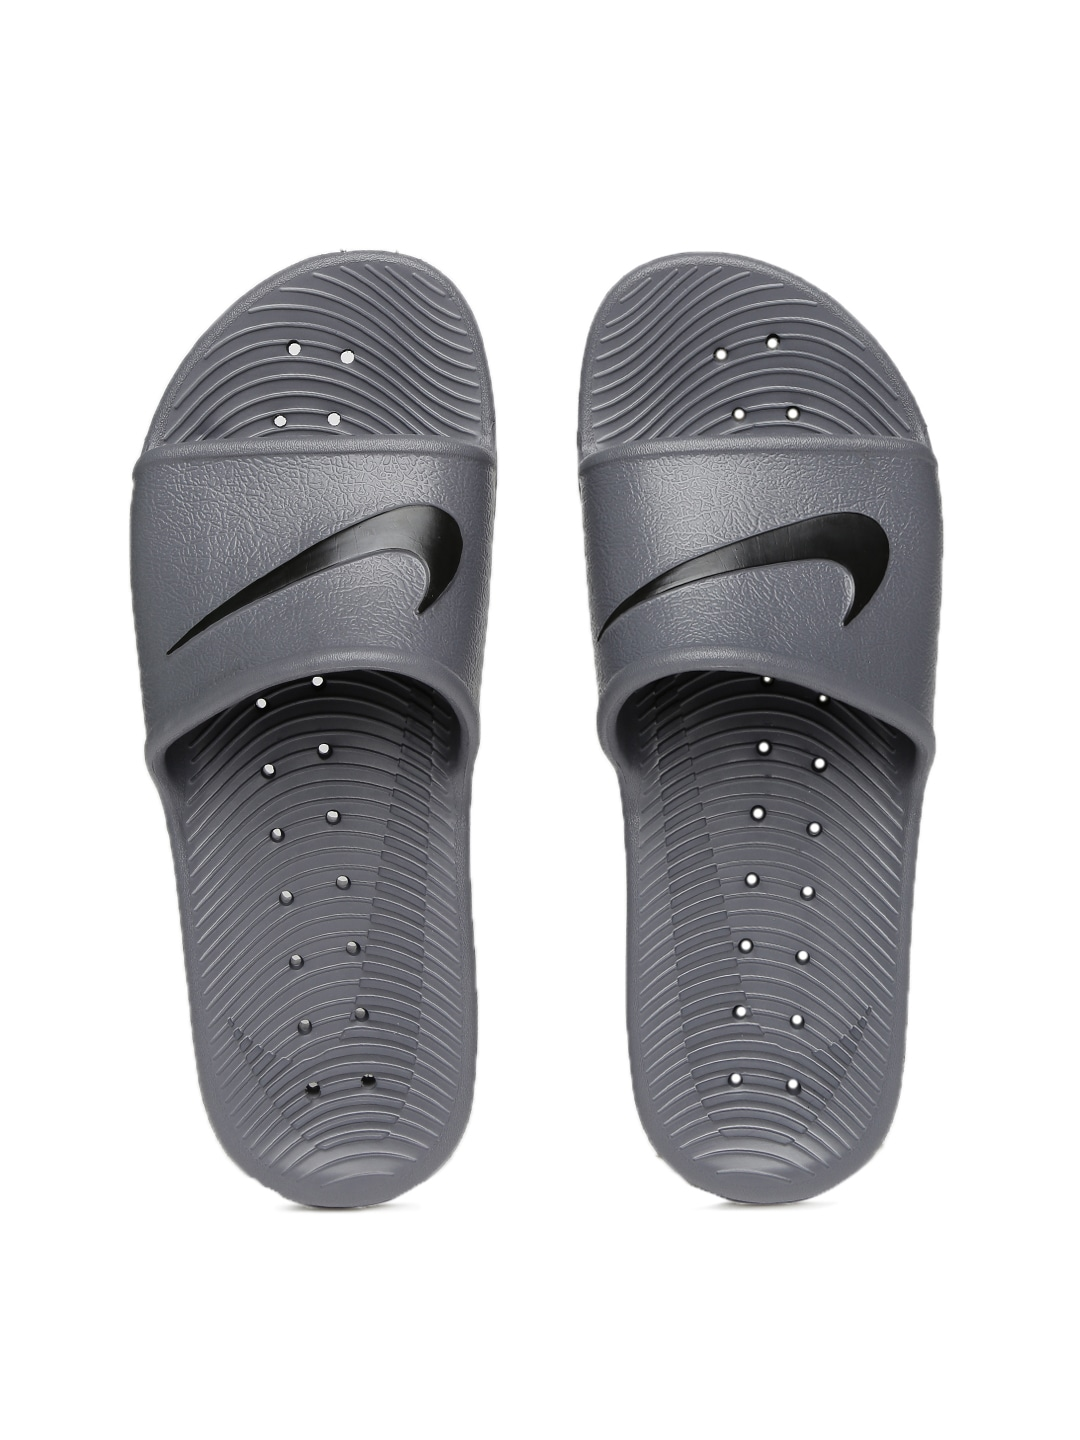 Discount Nike Ad5cb 487d3 Grey Sandals qSpUzMV